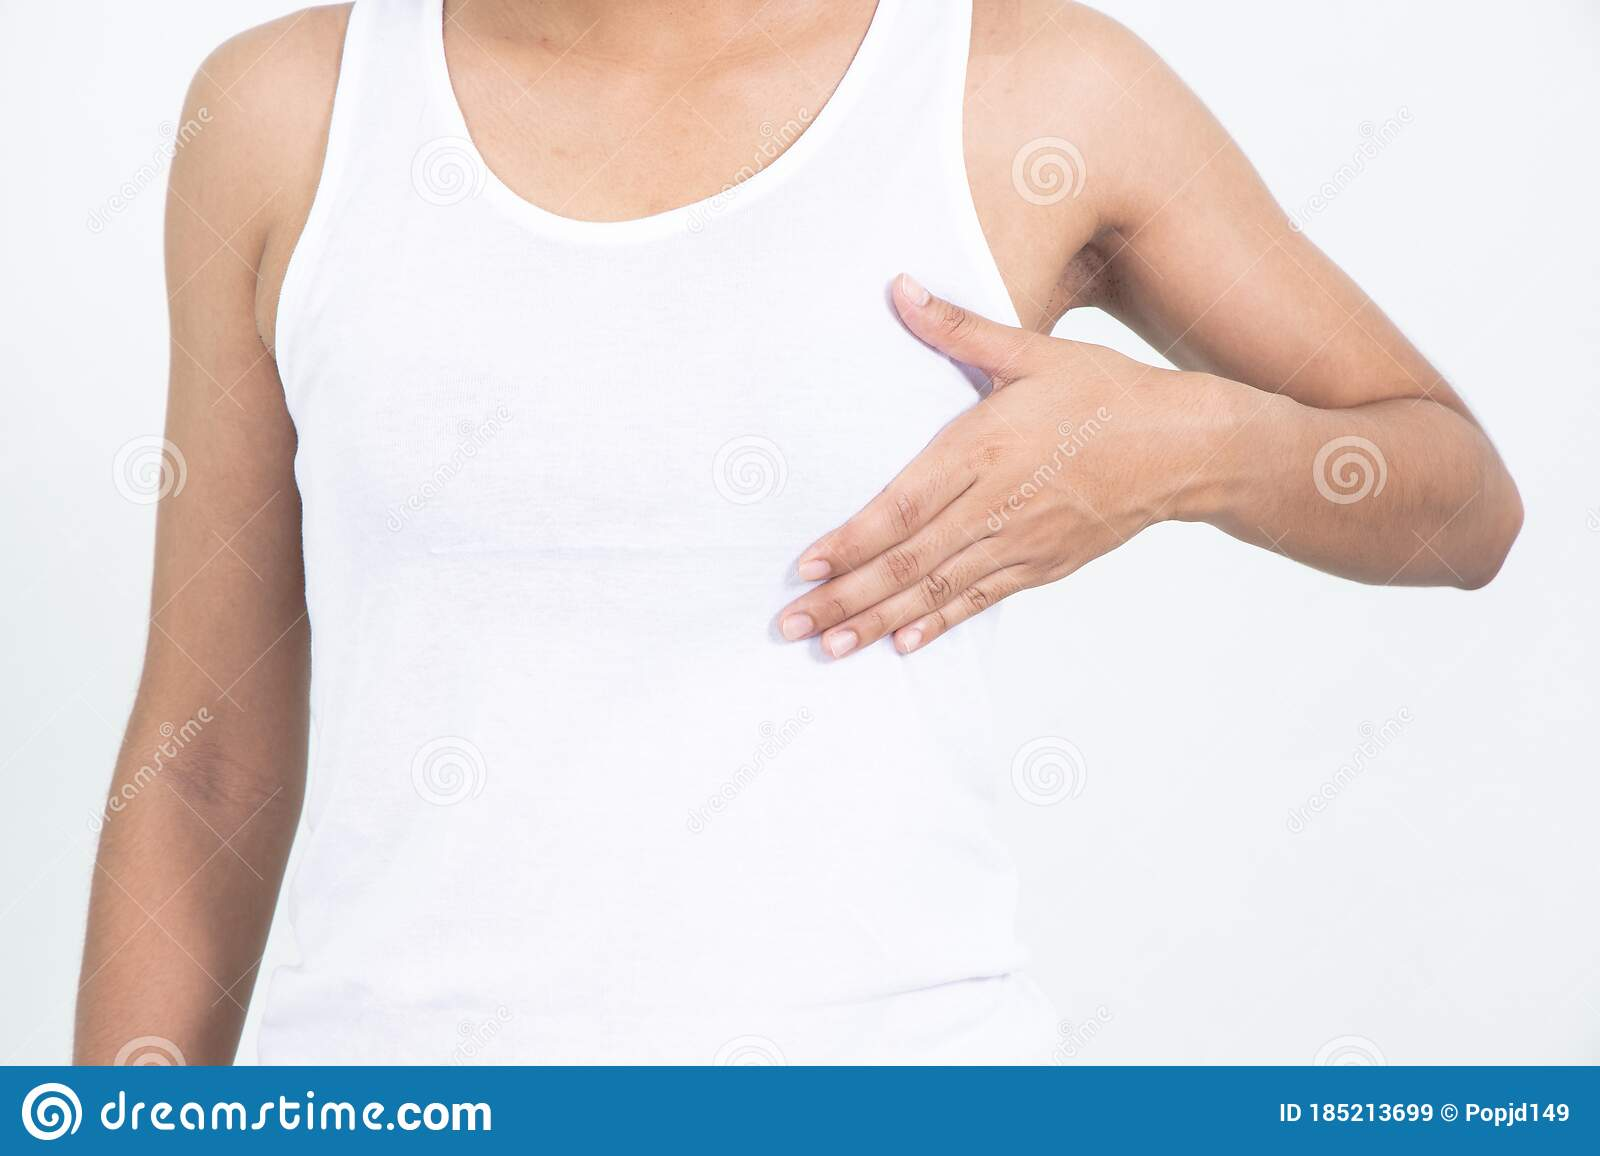 Woman Hand Checking Lumps On Her Breast For Signs Of Breast Cancer On Gray Background Healthcare Concept Stock Image Image Of Holding Background 185213699